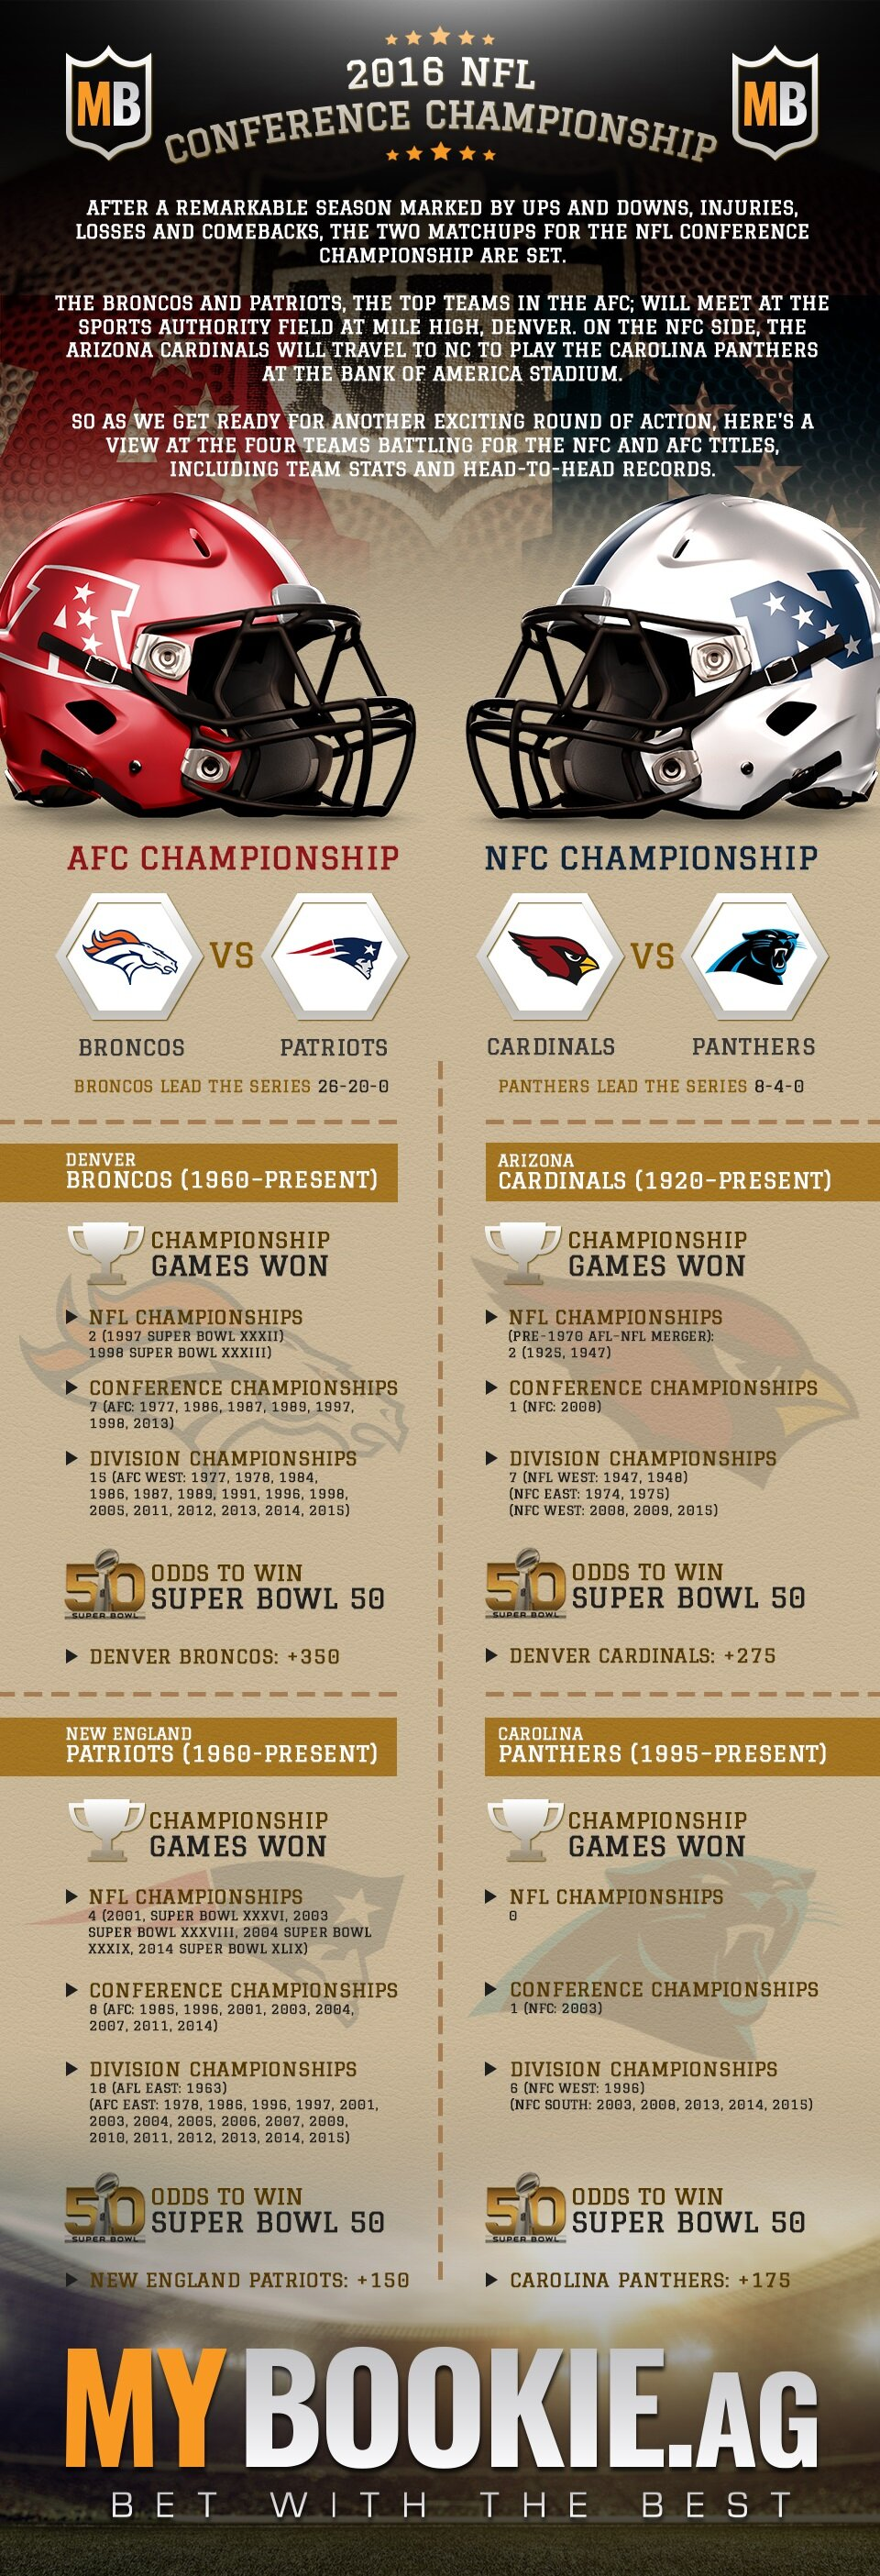 2016 NFL Conference Championship Betting Preview and Game Stats